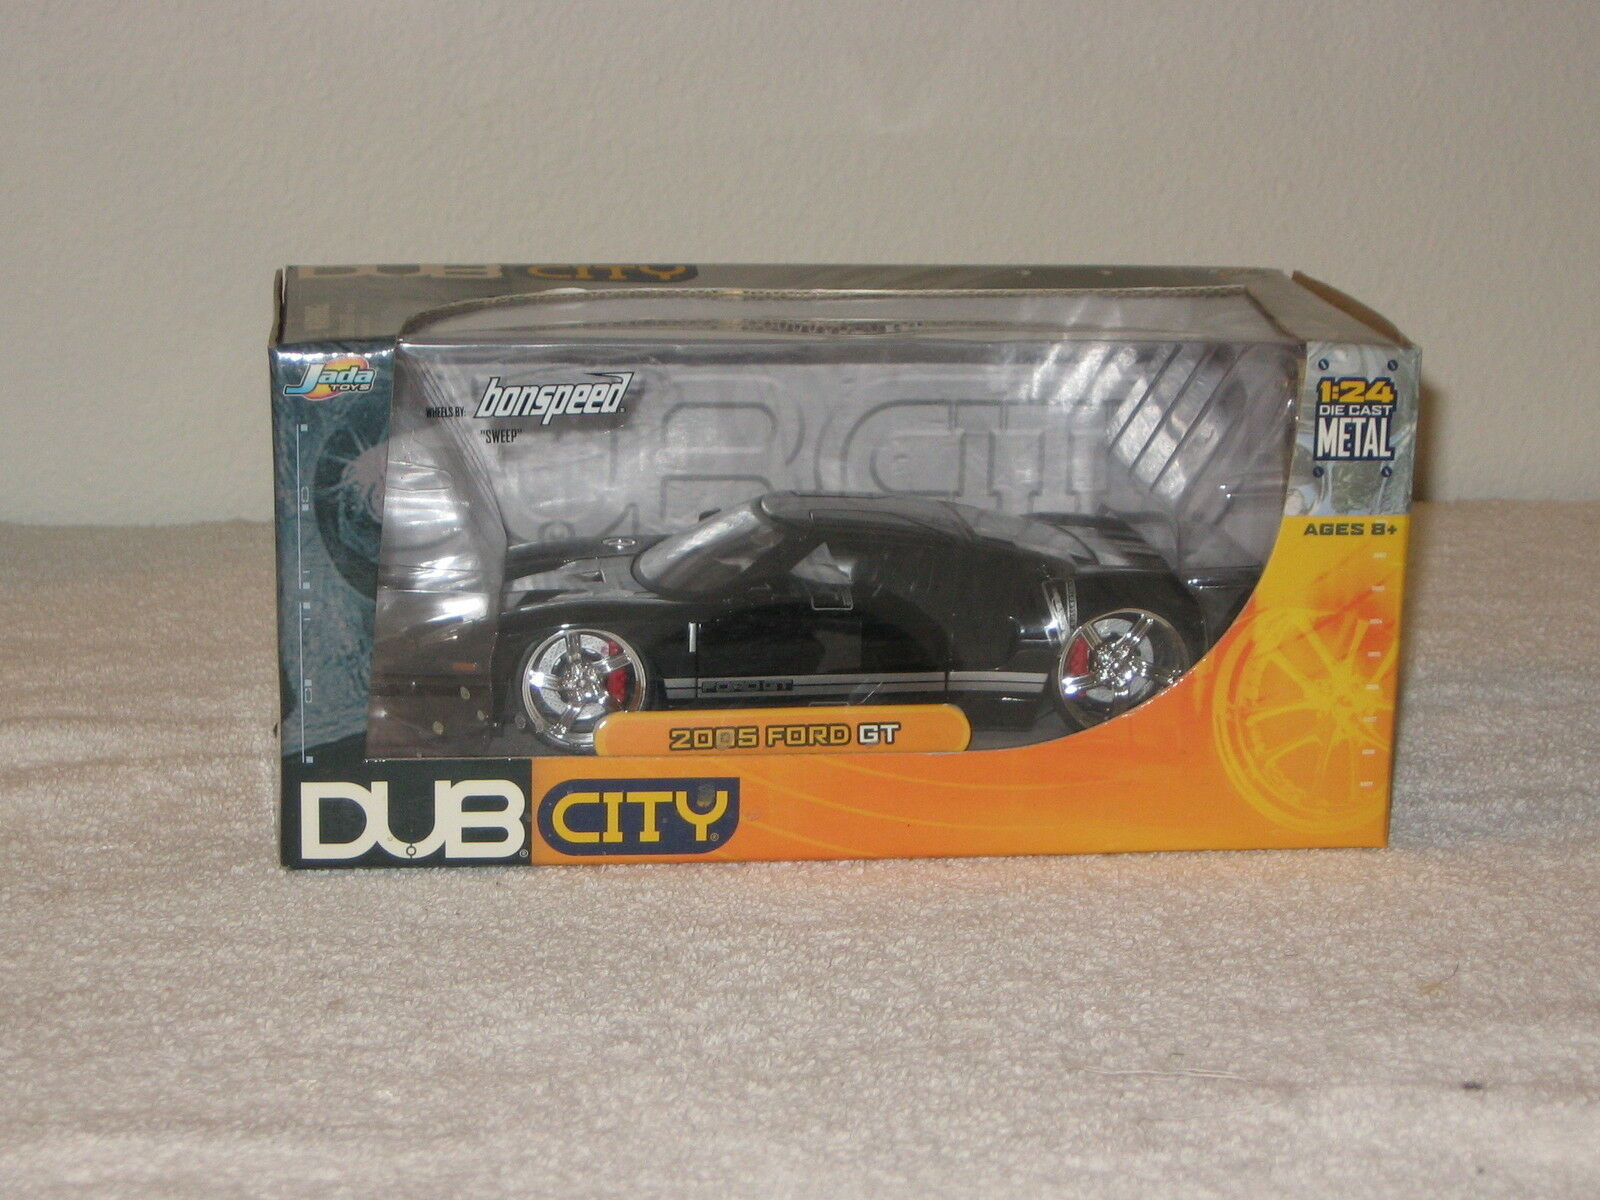 NIB DUB CITY JADA JADA JADA 2005 FORD GT DIE CAST METAL CAR 3e01c7